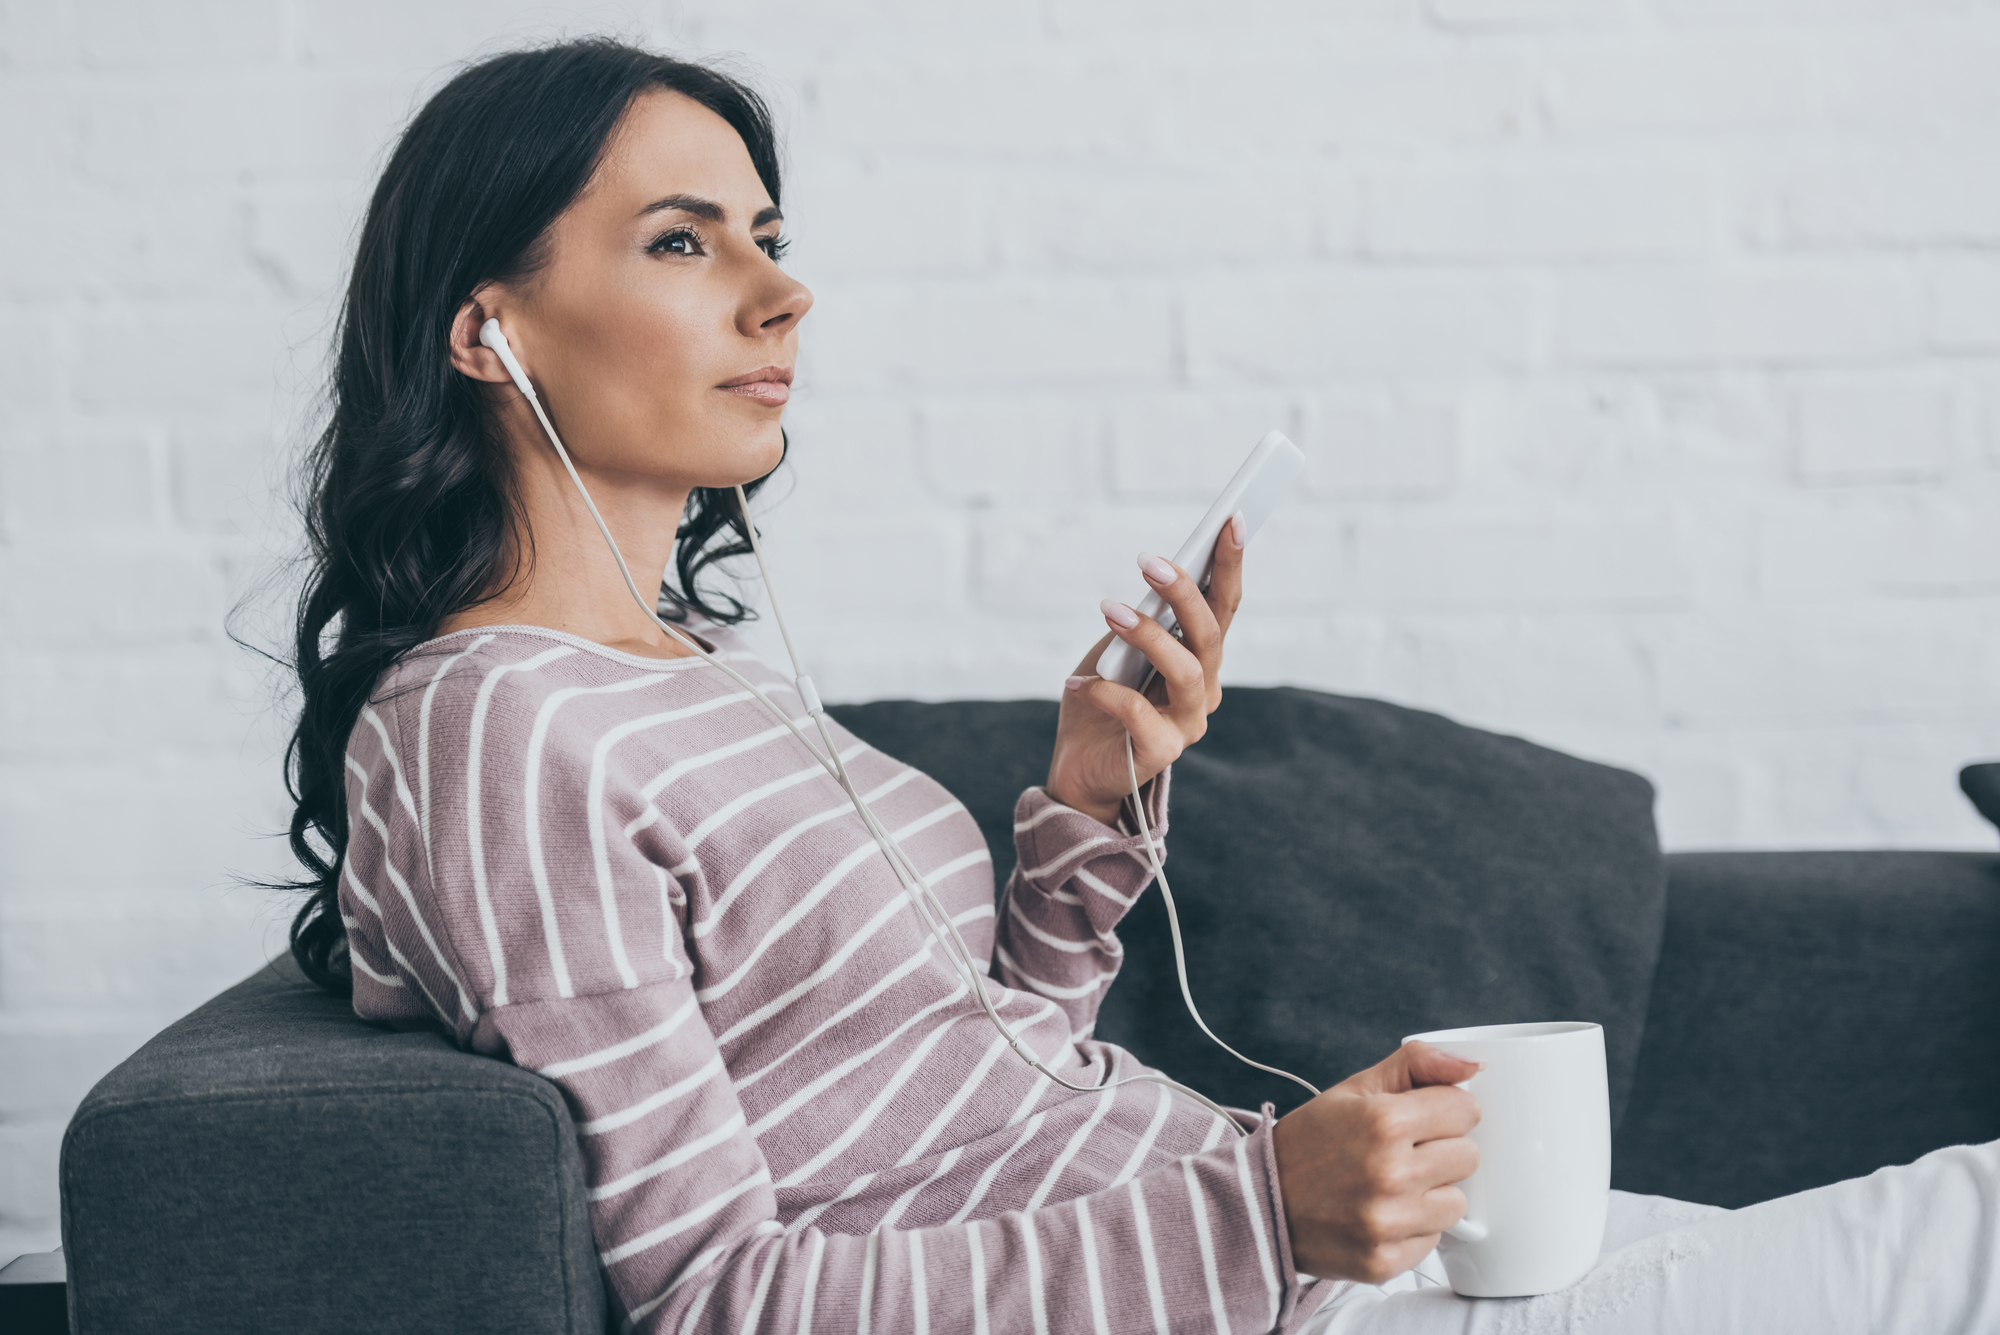 Attractive pensive woman listening music in earphones and looking away while resting on sofa